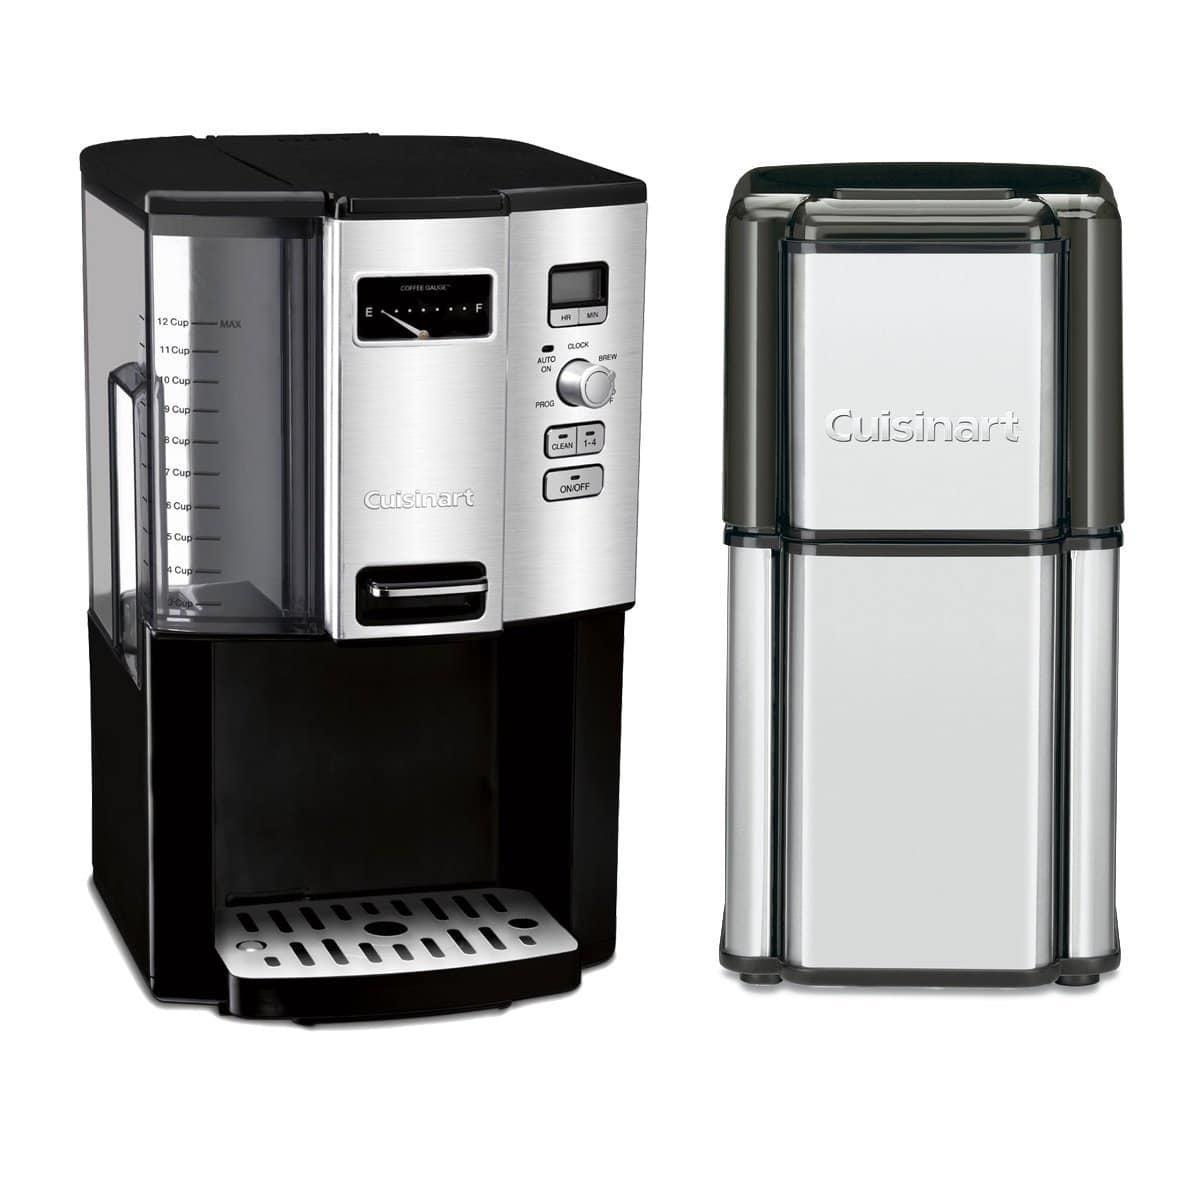 Unique Coffee Maker With Internal Storage Cuisinart Dcc 3000